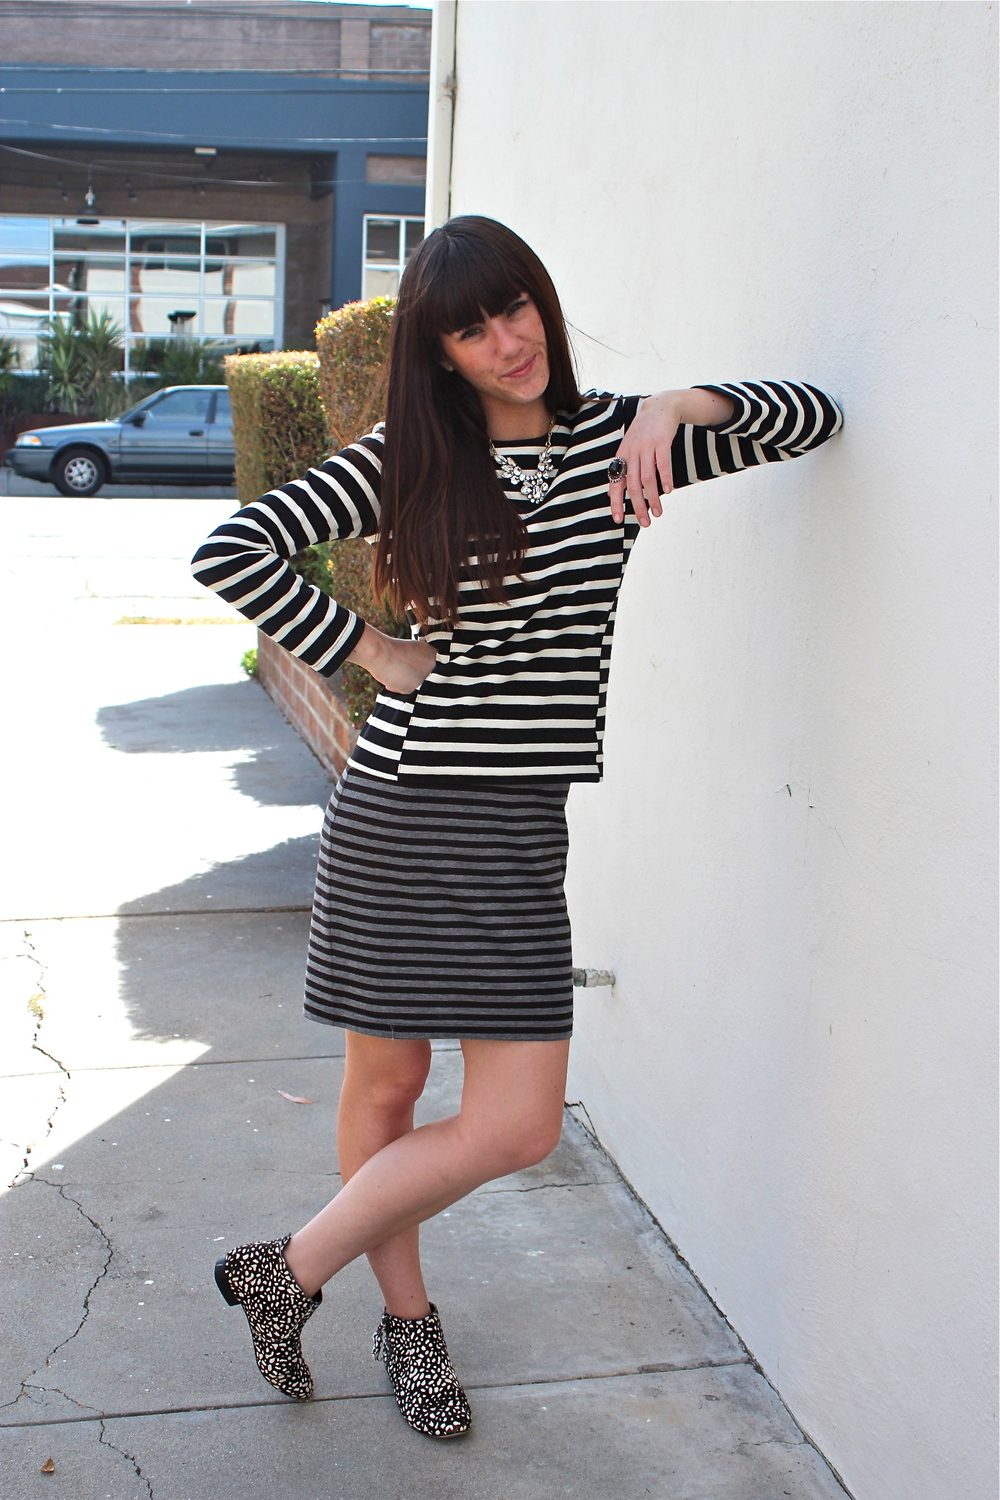 Stripe Top: J.Crew; Stripe Dress: UK Style by French Connection, Sears; Dotted Boots: Dolce Vita; Ring: Vintage; Necklace: J.Crew